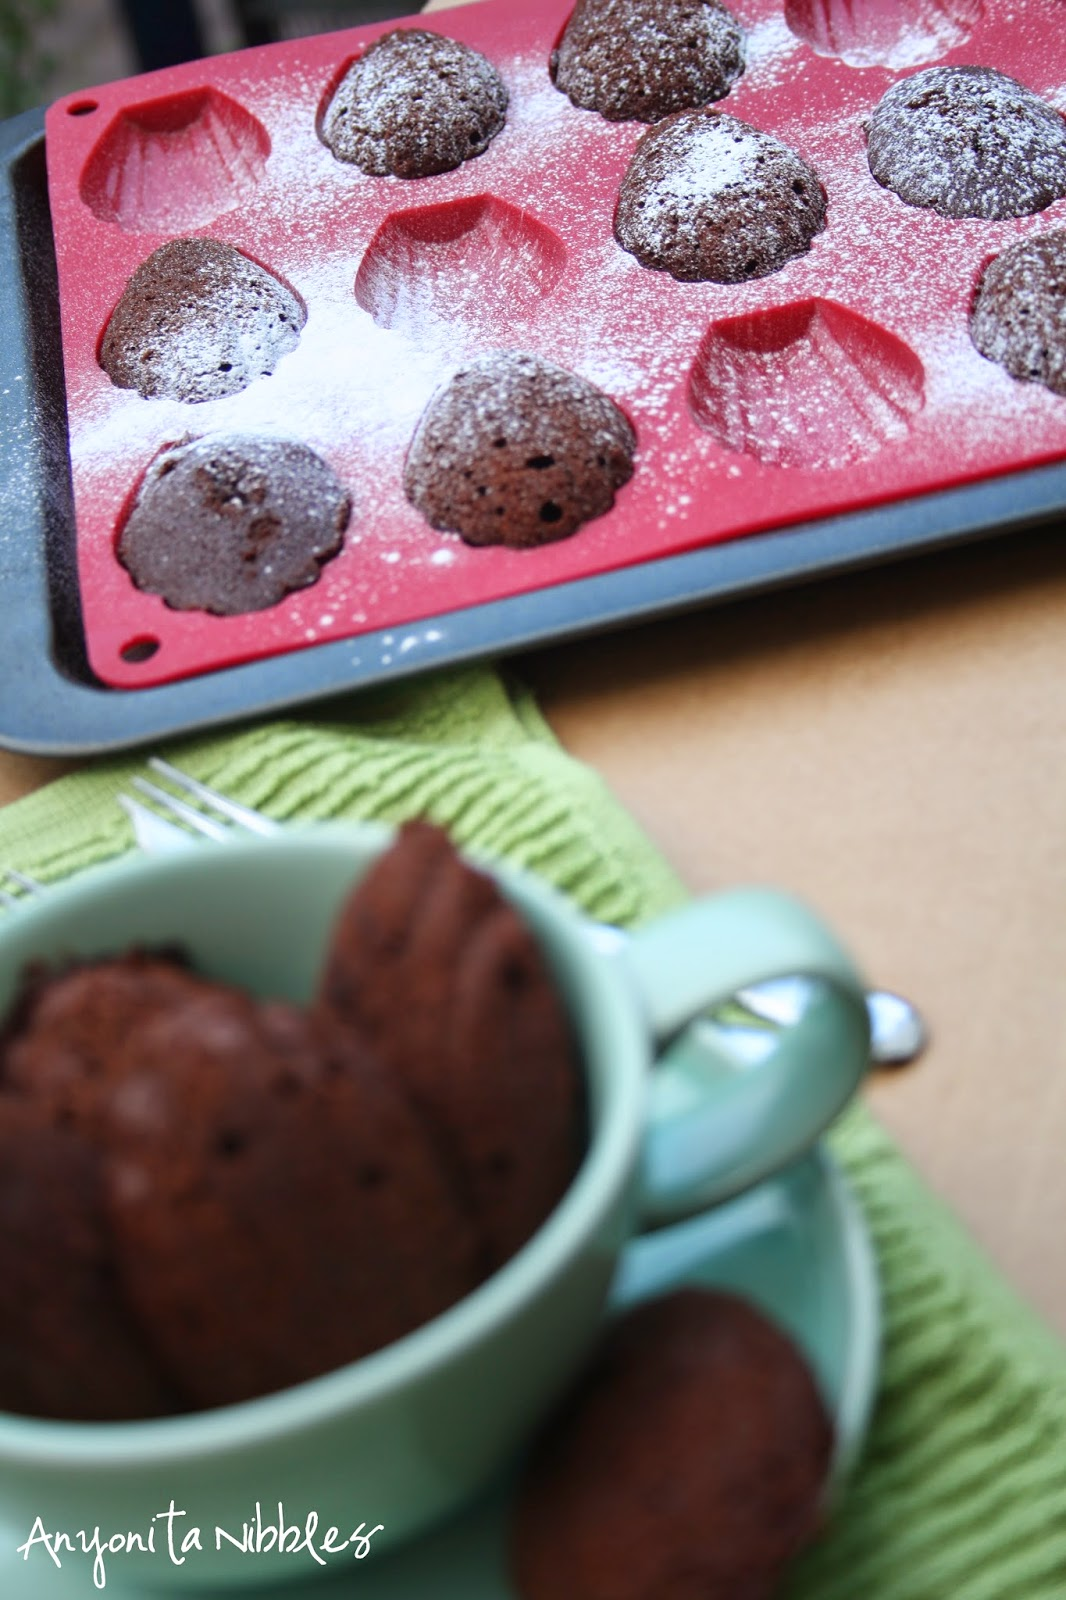 A cup and a tray of double chocolate madeleines from Anyonita Nibbles